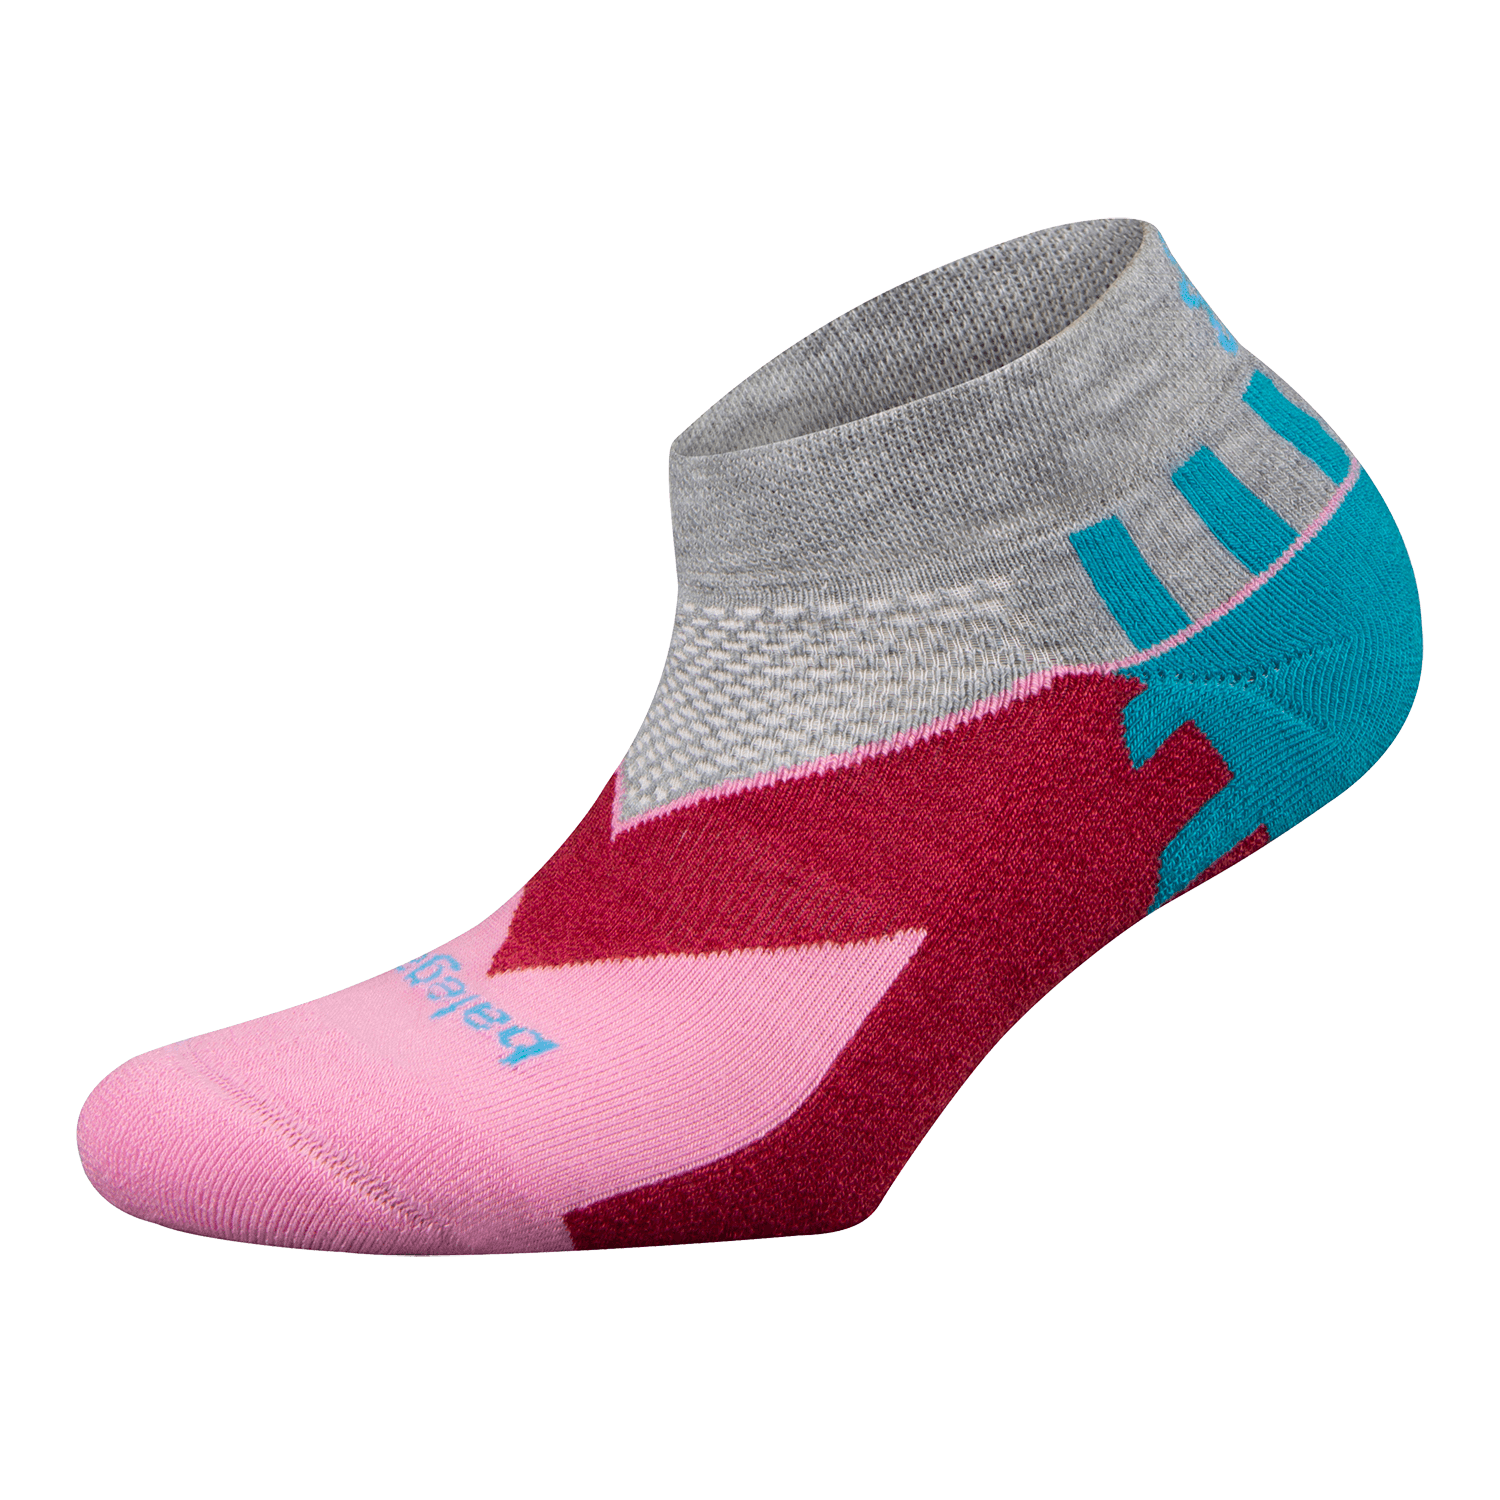 New 2019: Enduro Low Cut in Pink/Grey